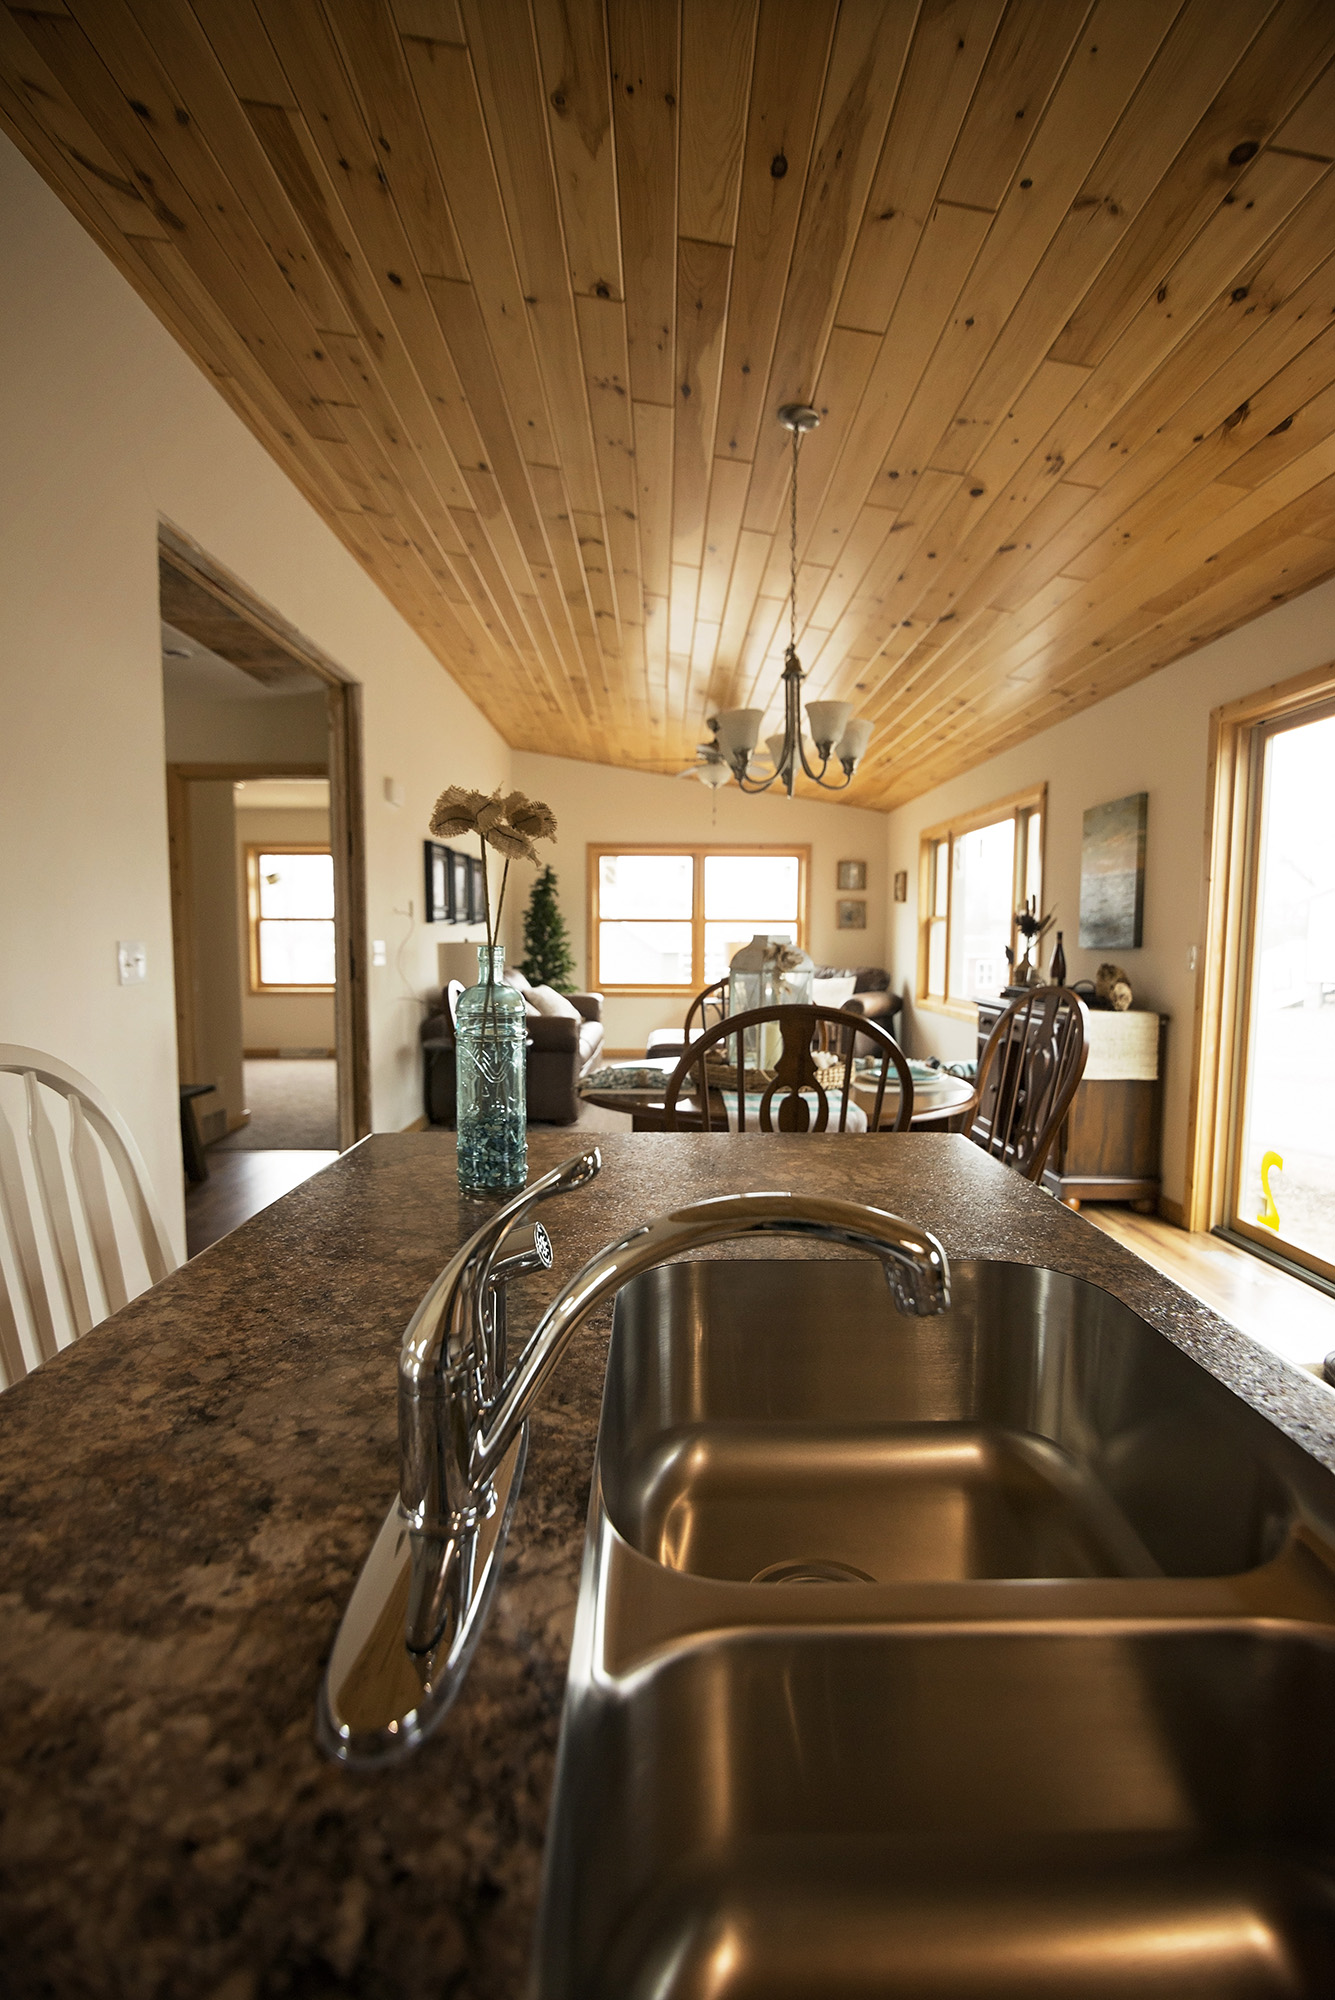 Modular Homes Mn >> Stratford Homes Cedarburg | Excelsior Homes West, Inc.